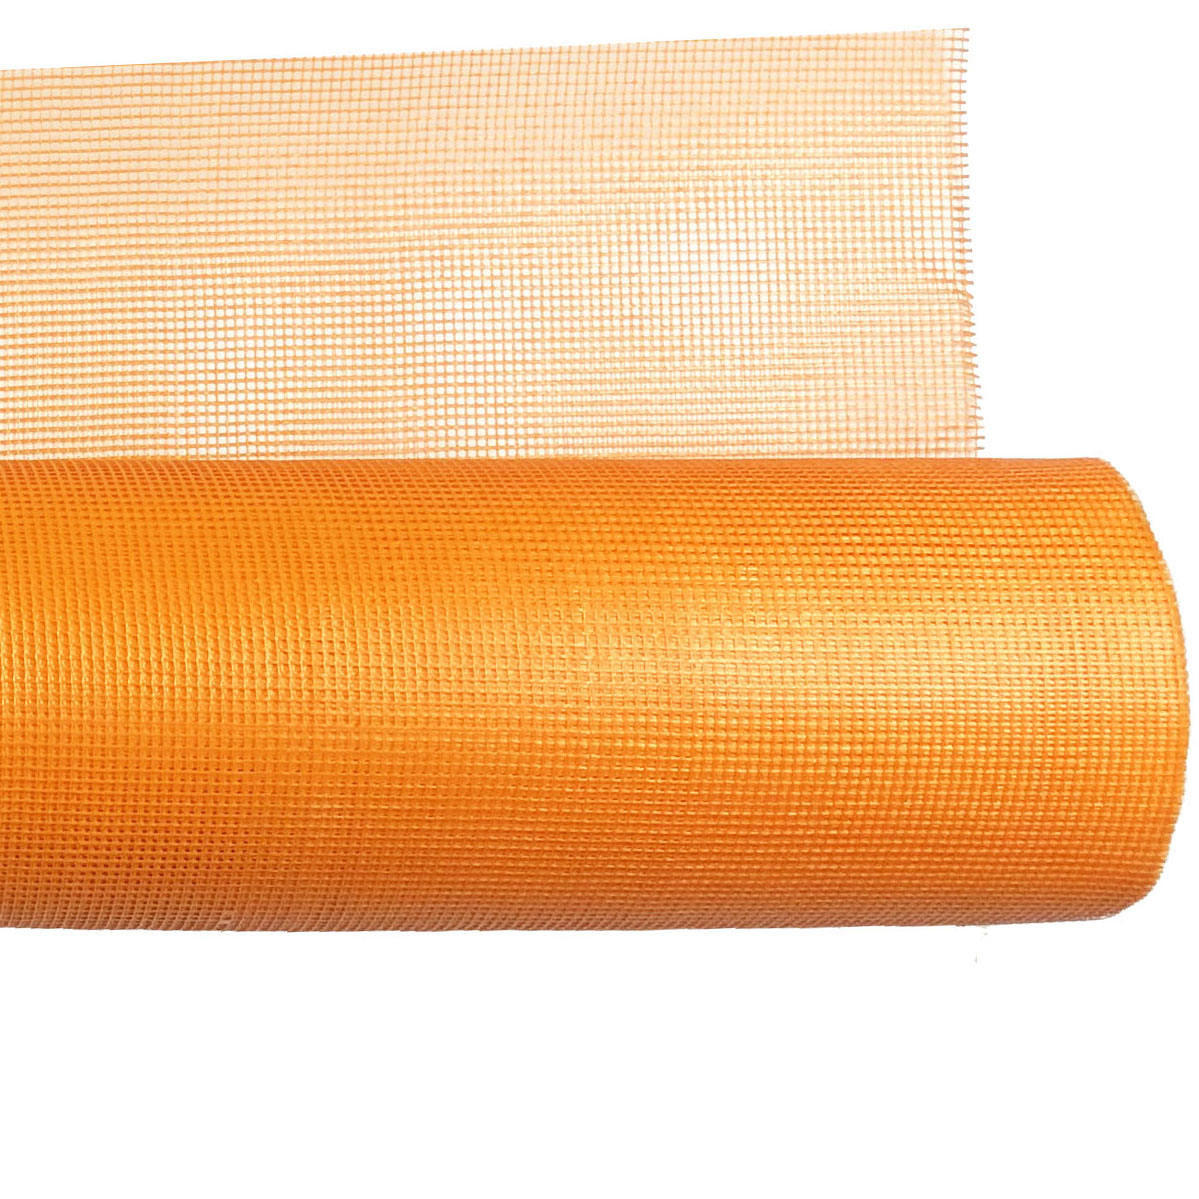 Alkali-resistant Fiberglass Mesh: Reinforced Wall Materials Alkali Resistant Soft Good Quality And Low Price